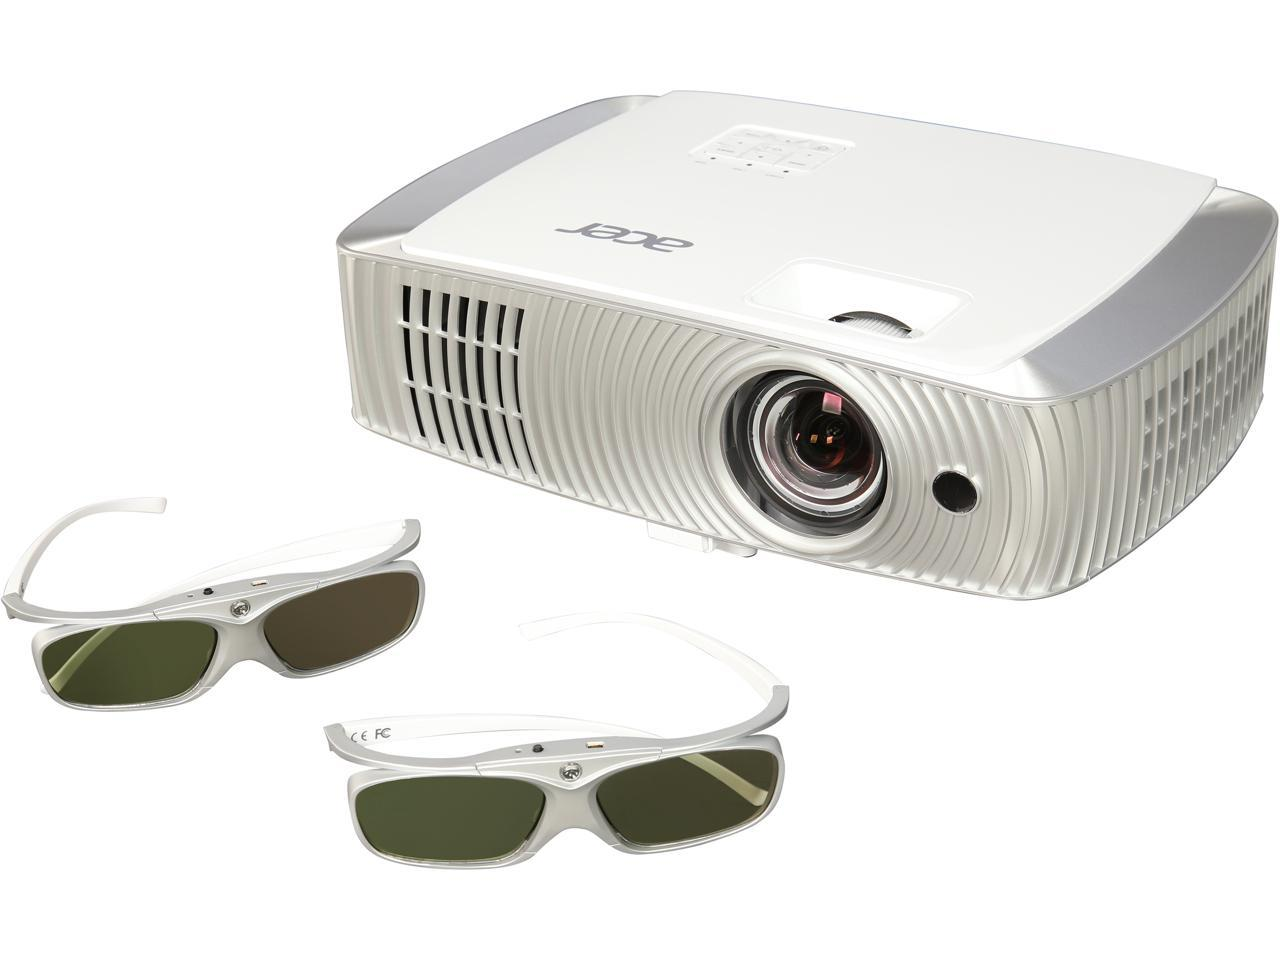 Projectors,Newegg.com